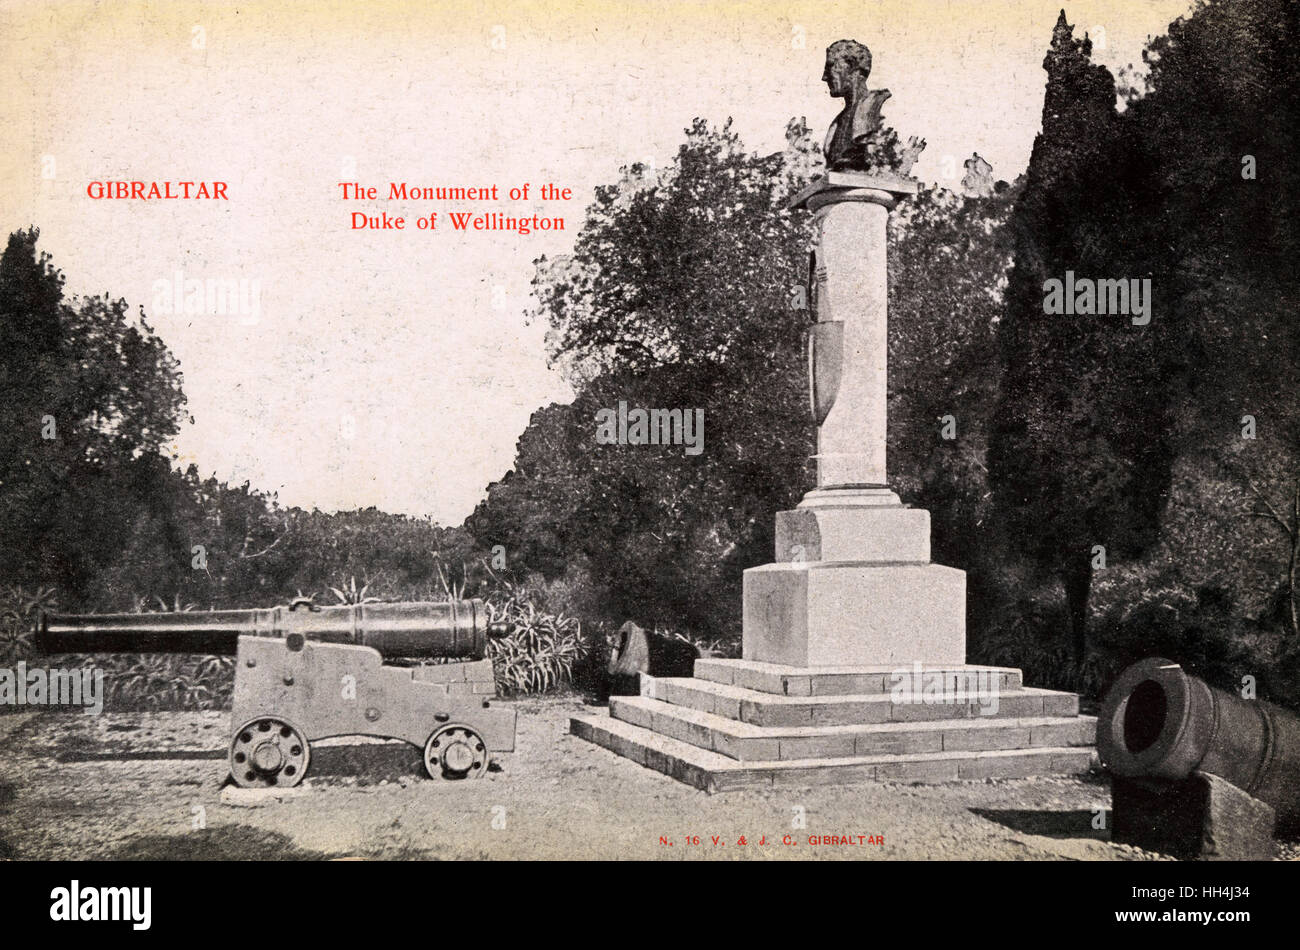 Duke of Wellington monument and cannon, Alameda Gardens, Gibraltar. - Stock Image